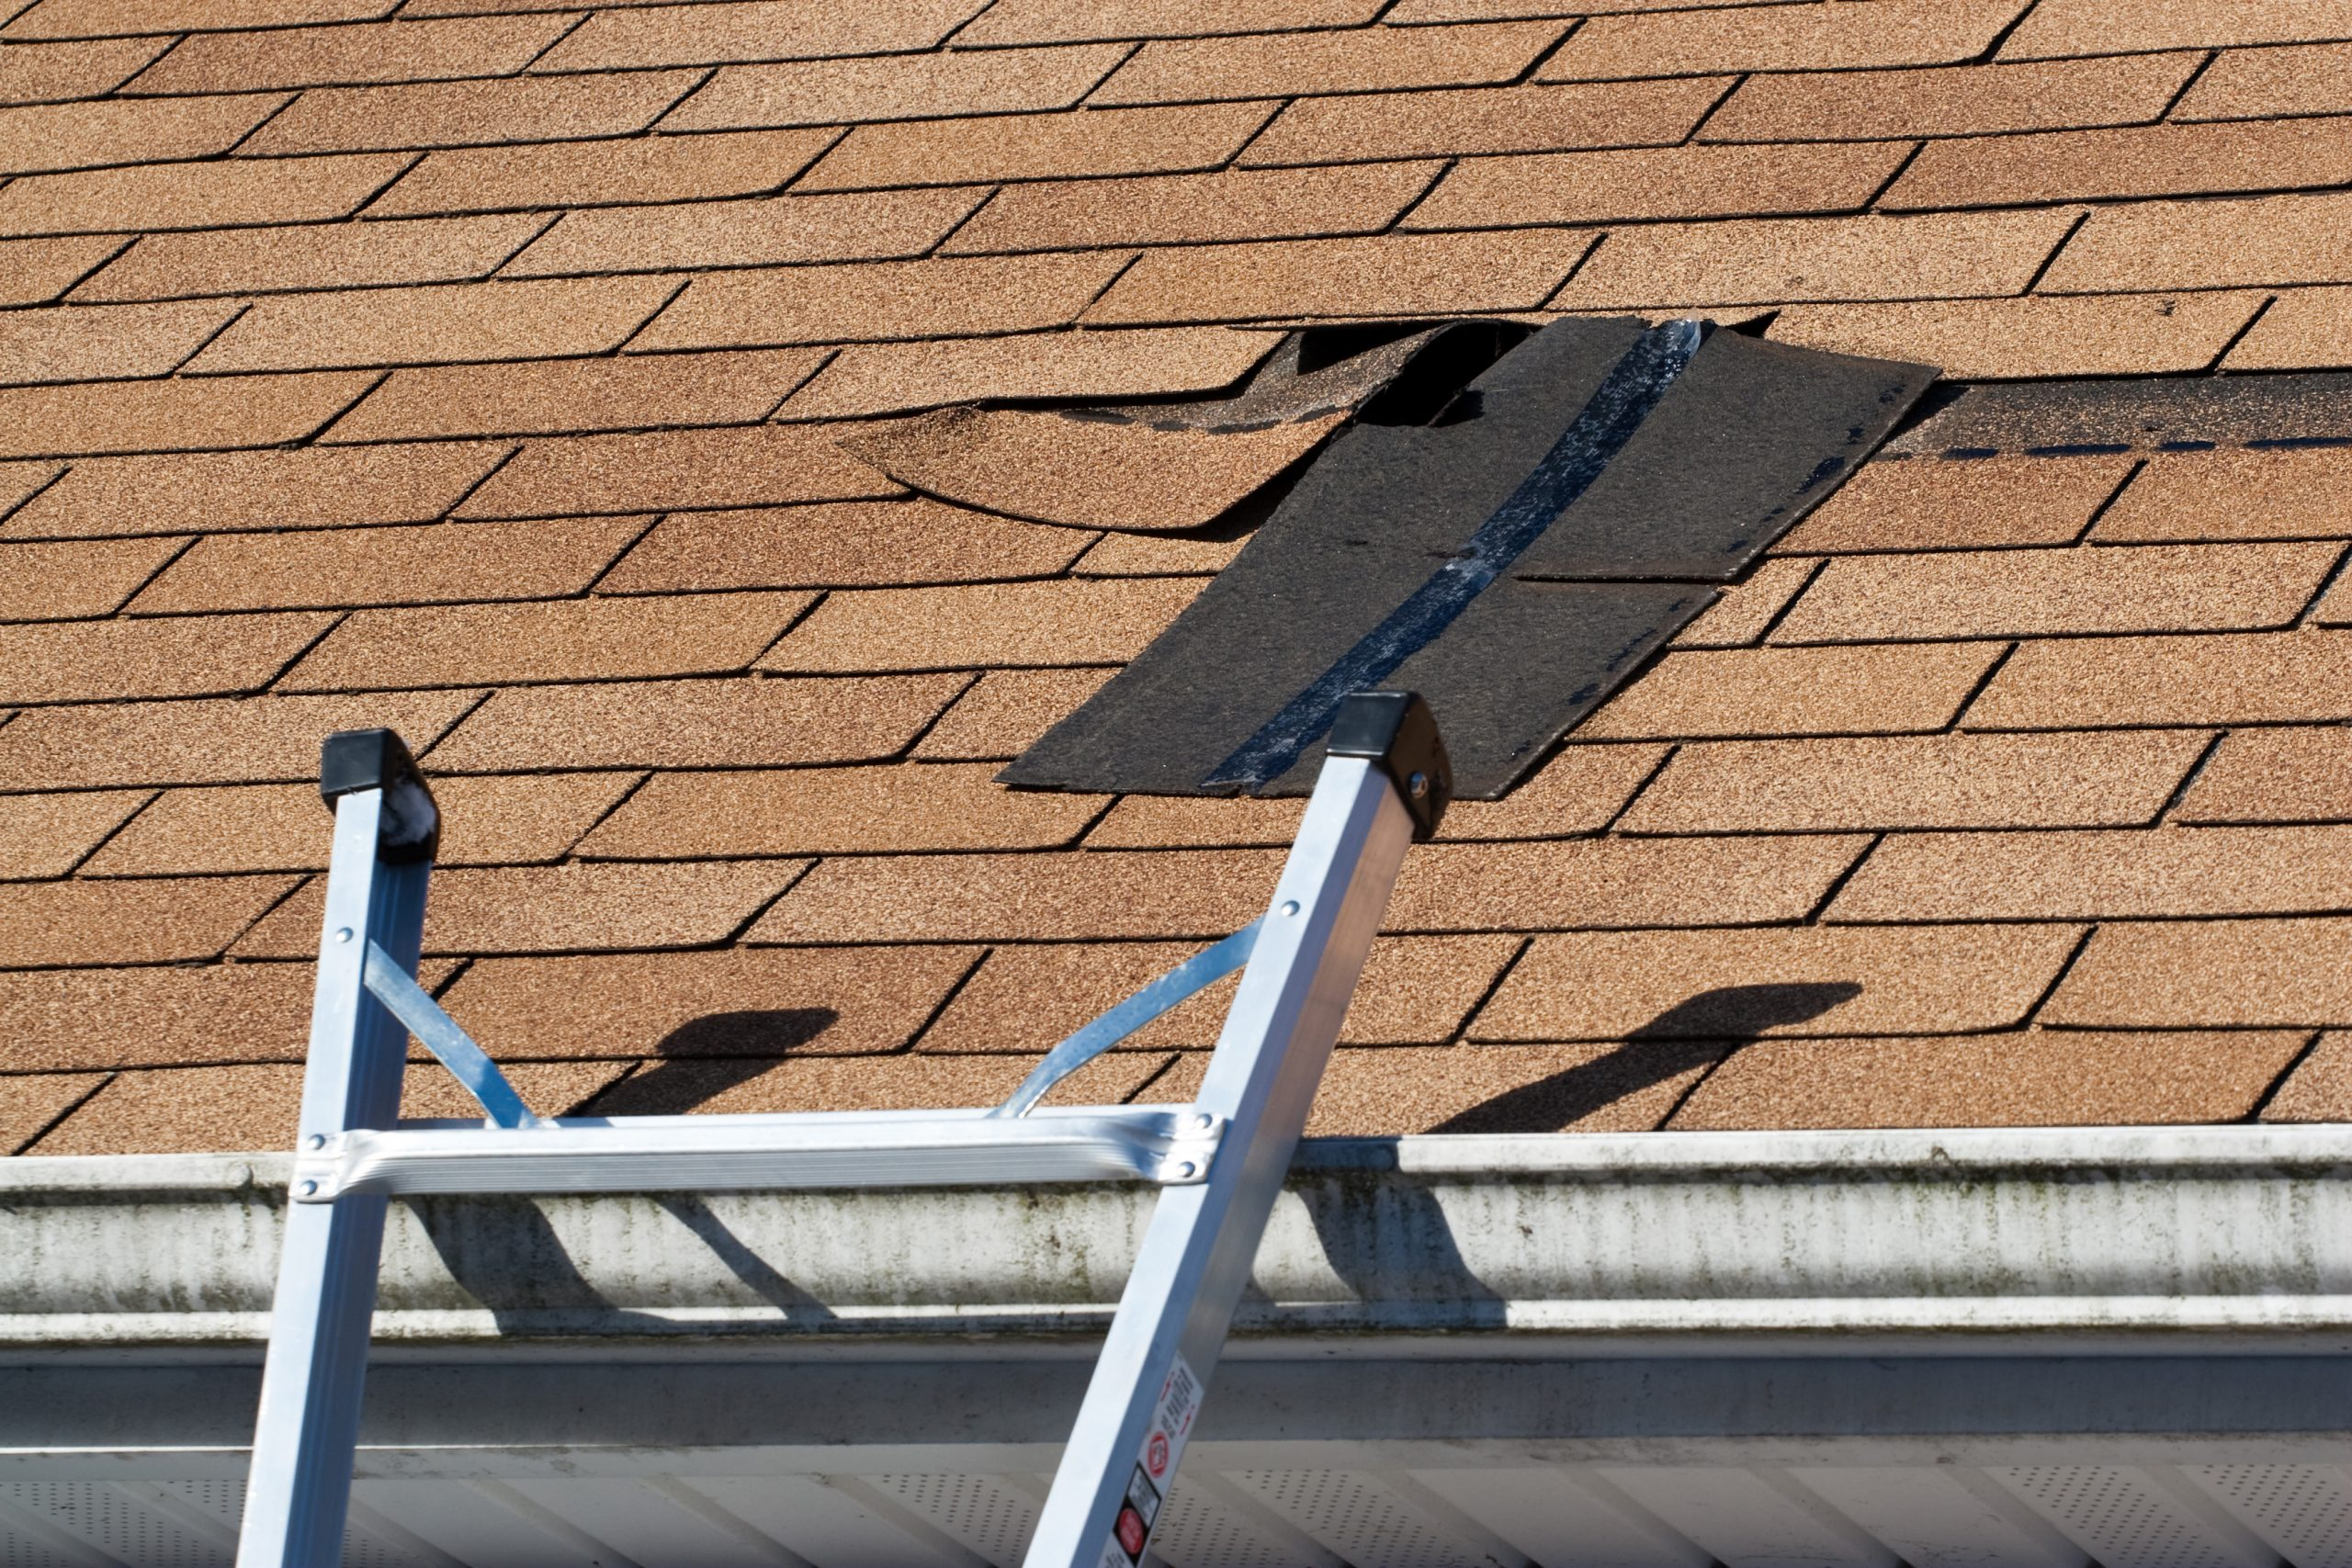 Damaged Roof Shingles on a business roof